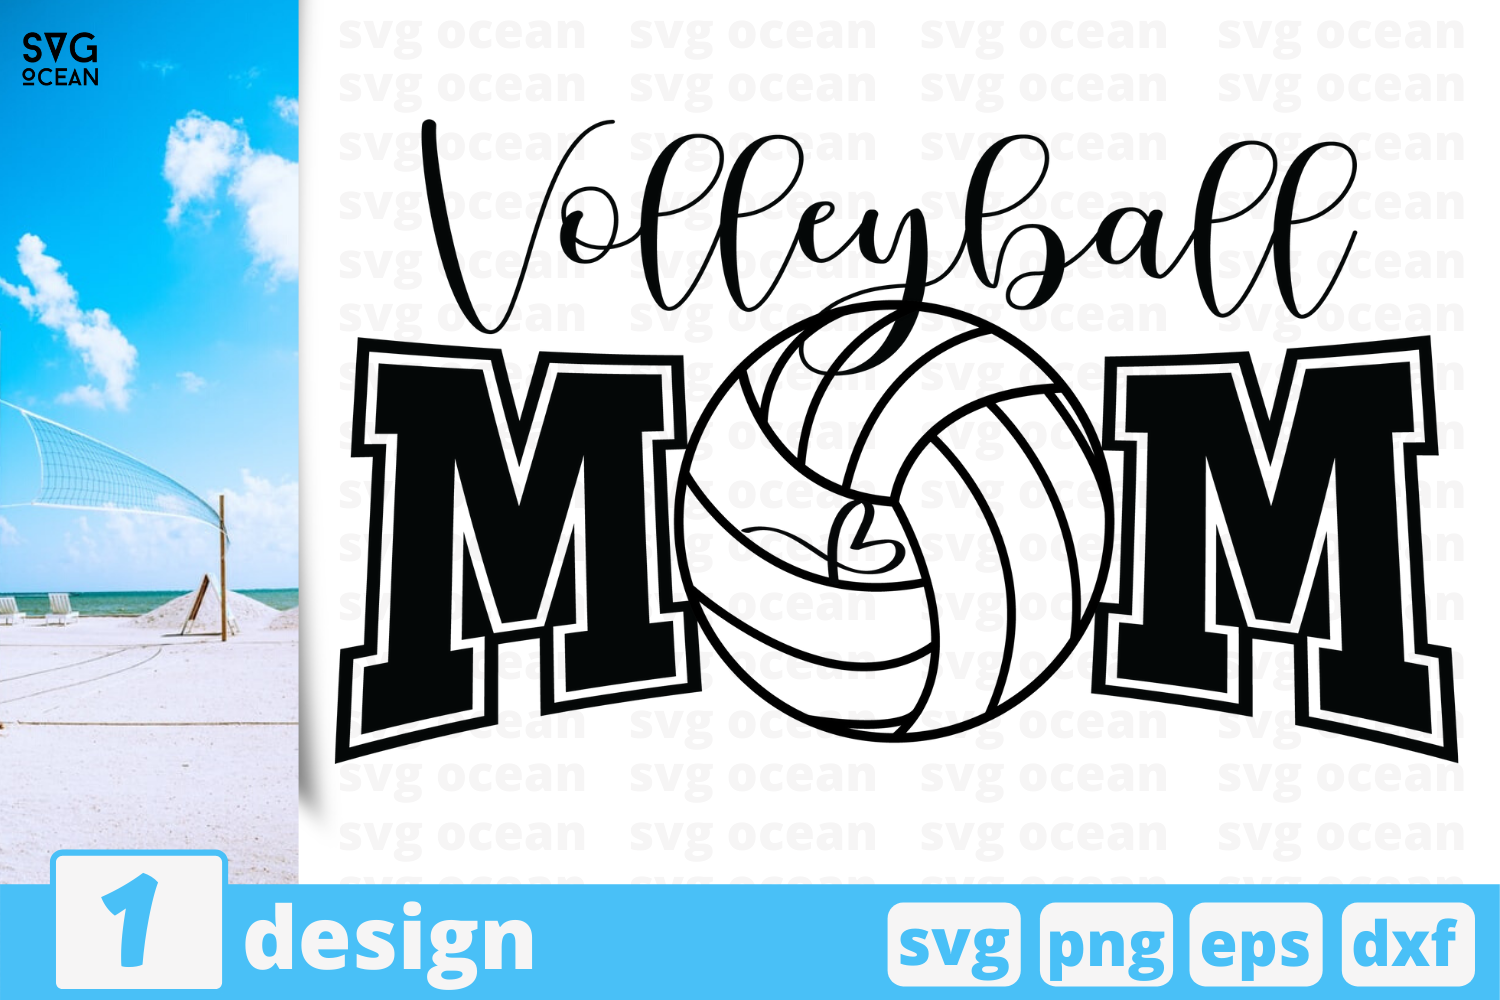 Download Free Volleyball Mom Graphic By Svgocean Creative Fabrica for Cricut Explore, Silhouette and other cutting machines.